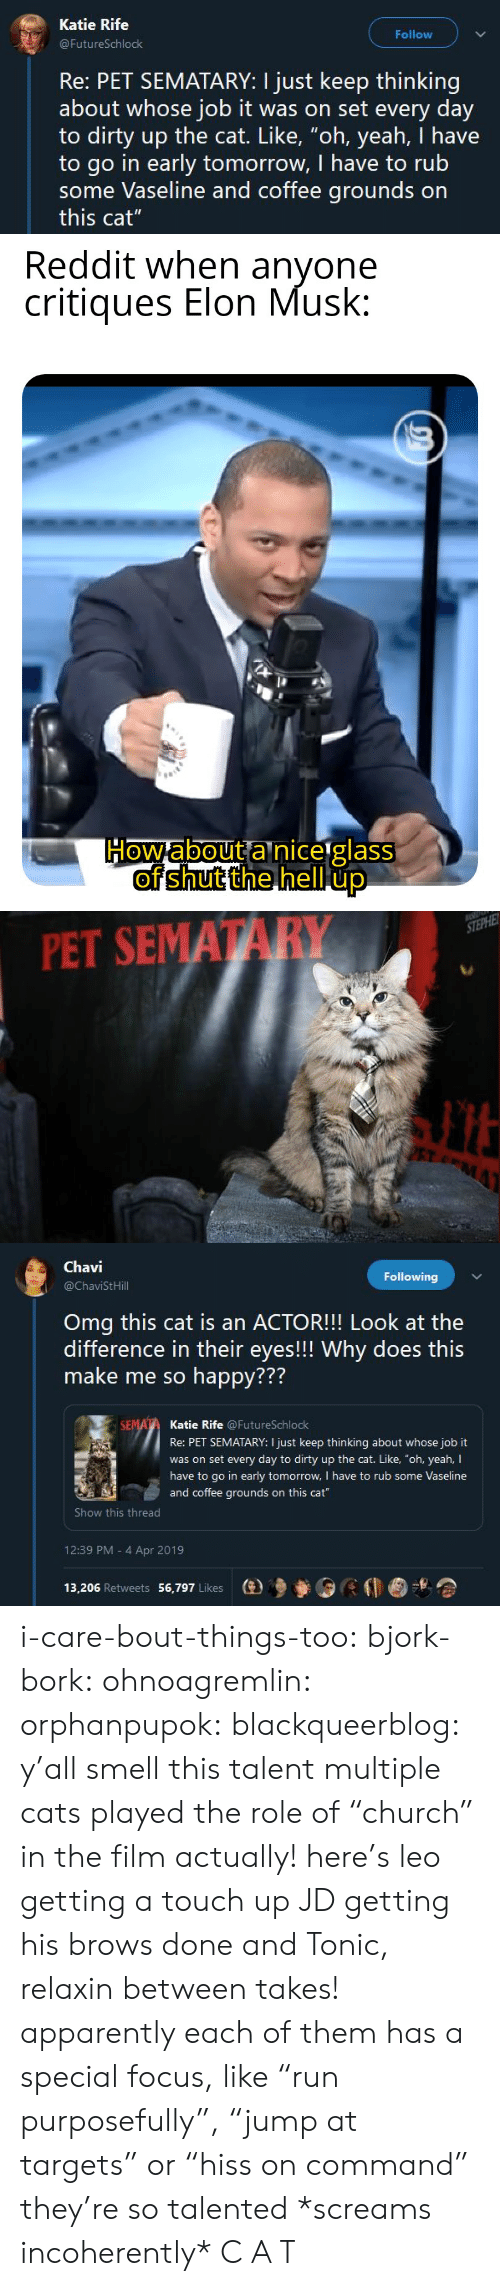 "leo: Katie Rife  Follow  FutureSchlock  Re: PET SEMATARY: I just keep thinking  about whose job it was on set every day  to dirty up the cat. Like, ""oh, yeah, I have  to go in early tomorrow, I have to rub  some Vaseline and coffee grounds on  this cat""   PET SEMATARY   Chavi  @ChaviStHill  Following  Omg this cat is an ACTOR!!! Look at the  difference in their eyes!!! Why does this  make me so happy???  772  Katie Rife @FutureSchlock  Re: PET SEMATARY: I just keep thinking about whose job it  was on set every day to dirty up the cat. Like, ""oh, yeah, I  have to go in early tomorrow, I have to rub some Vaseline  and coffee grounds on this cat  Show this thread  12:39 PM - 4 Apr 2019  13,206 Retweets 56,797 Likes  (e)乡參0 i-care-bout-things-too:  bjork-bork:  ohnoagremlin:  orphanpupok:  blackqueerblog: y'all smell this talent  multiple cats played the role of ""church"" in the film actually! here's leo getting a touch up JD getting his brows done and Tonic, relaxin between takes!   apparently each of them has a special focus, like ""run purposefully"", ""jump at targets"" or ""hiss on command"" they're so talented     *screams incoherently* C A T"